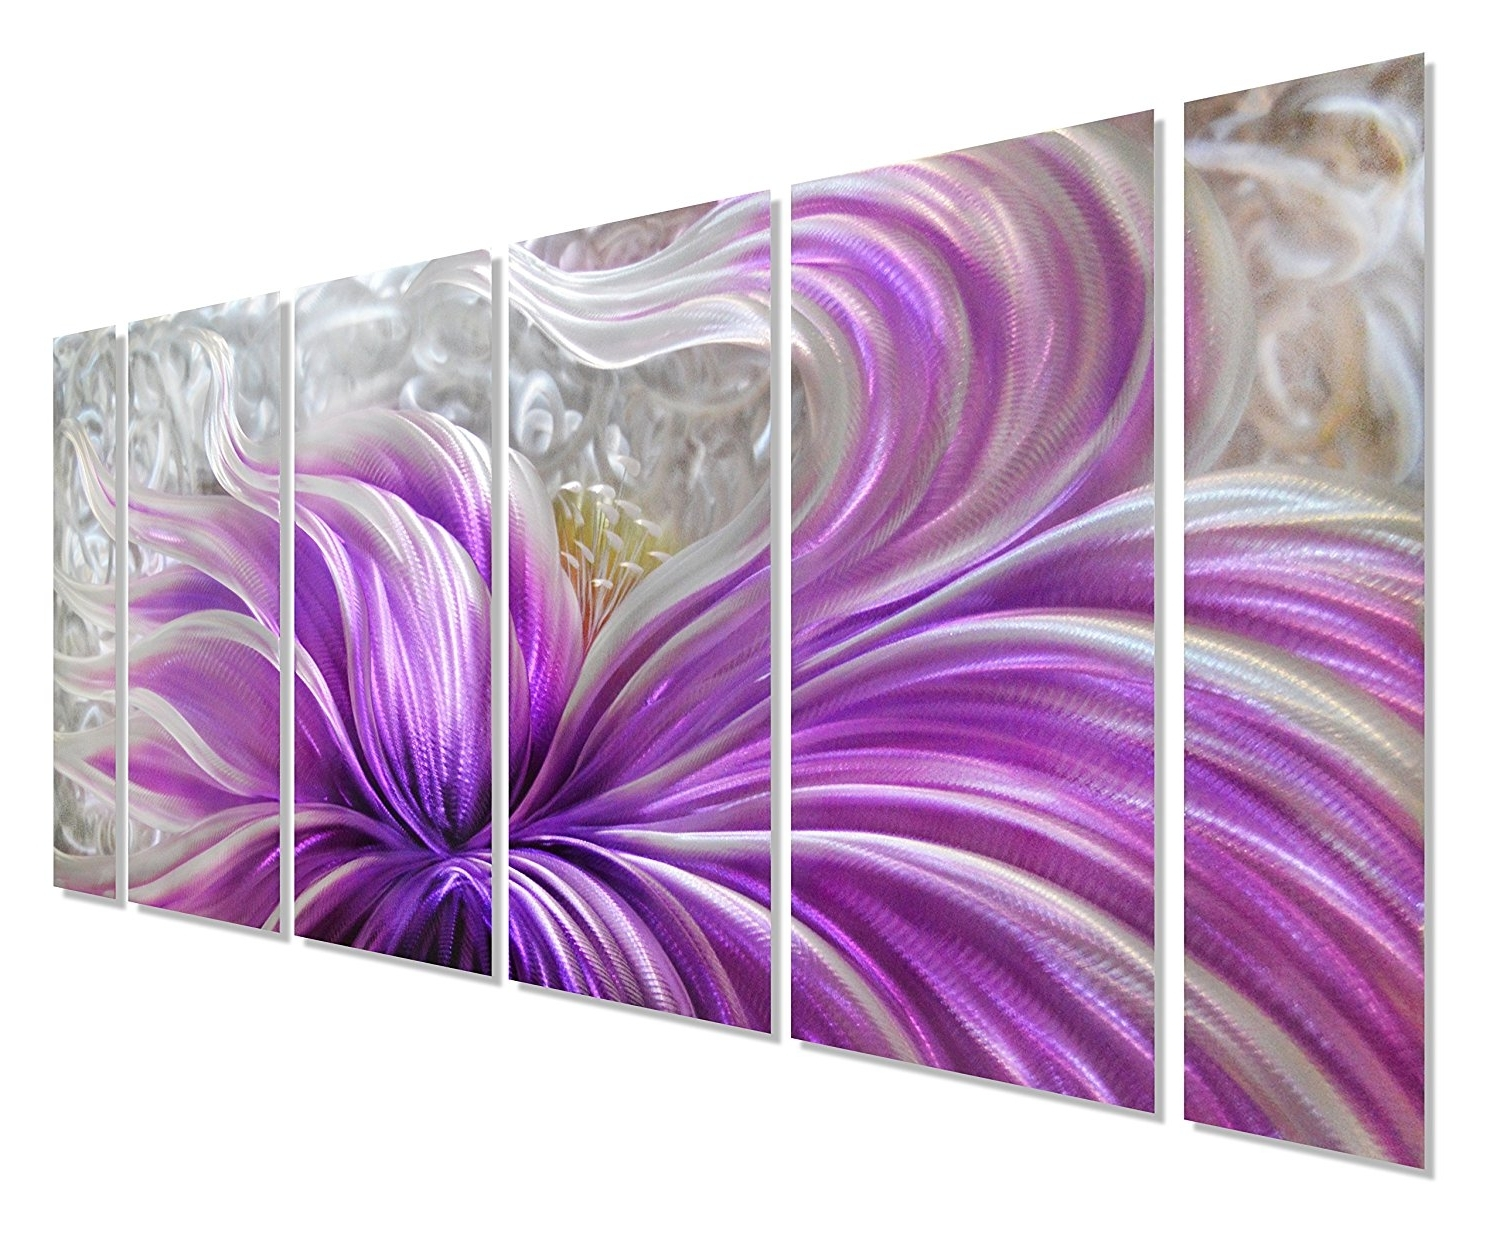 Most Recent Amazon: Pure Art Purple Blossoms Flower Metal Wall Art For Purple Wall Art (View 6 of 15)